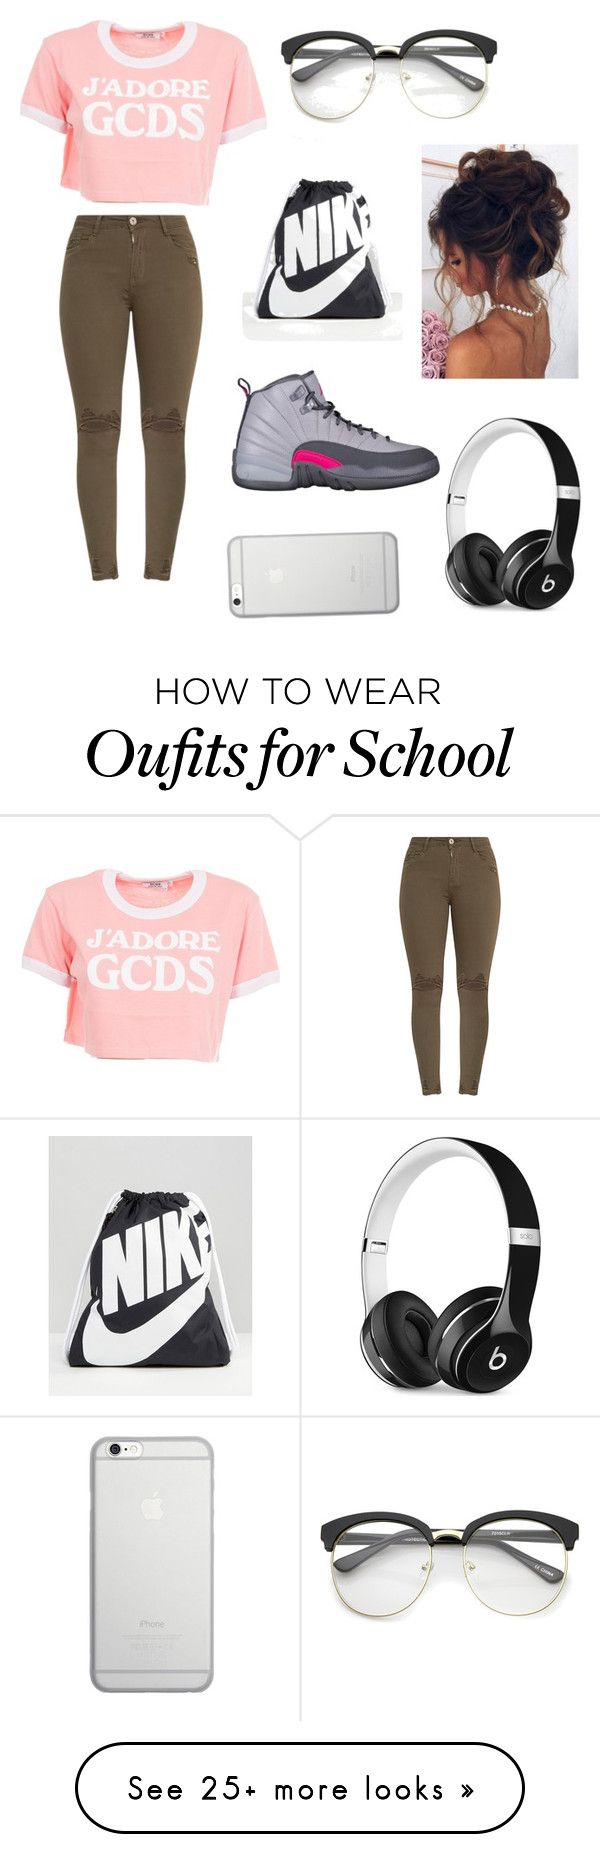 """Rate it 1-10 "" by arianaraygada on Polyvore featuring GCDS, ZeroUV, NIKE, Beats by Dr. Dre and Native Union"